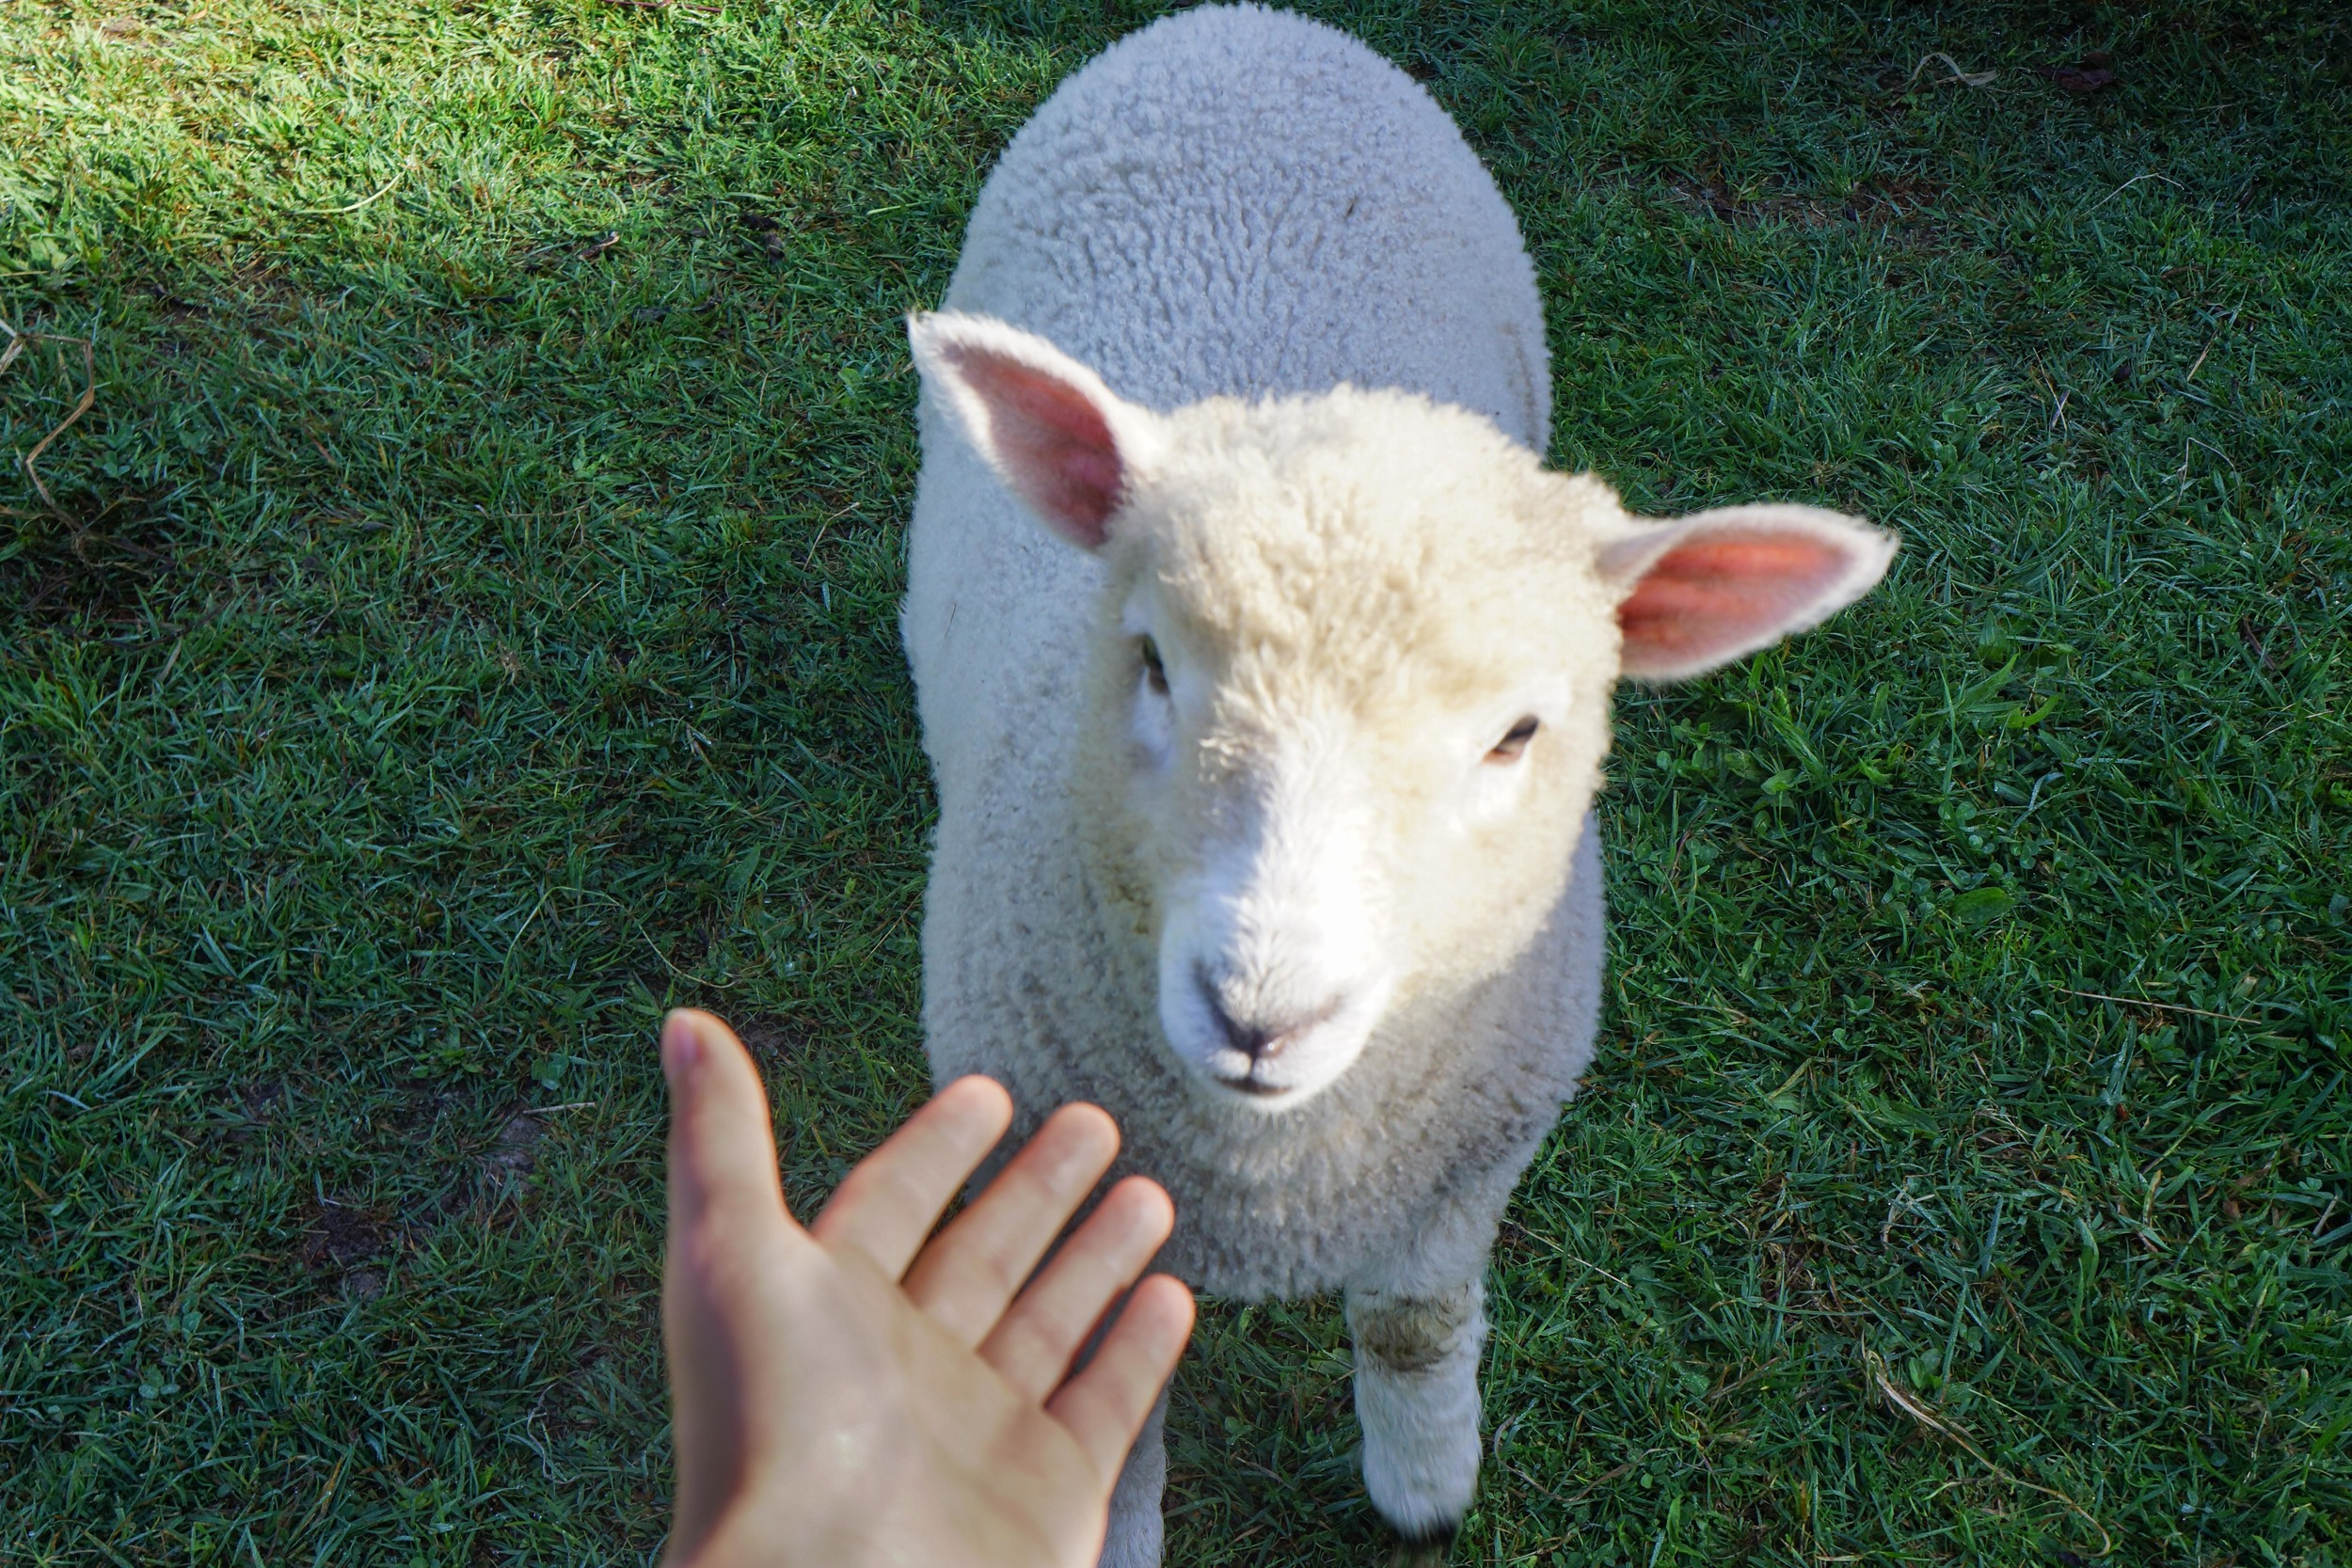 This little lamb almost loved me.